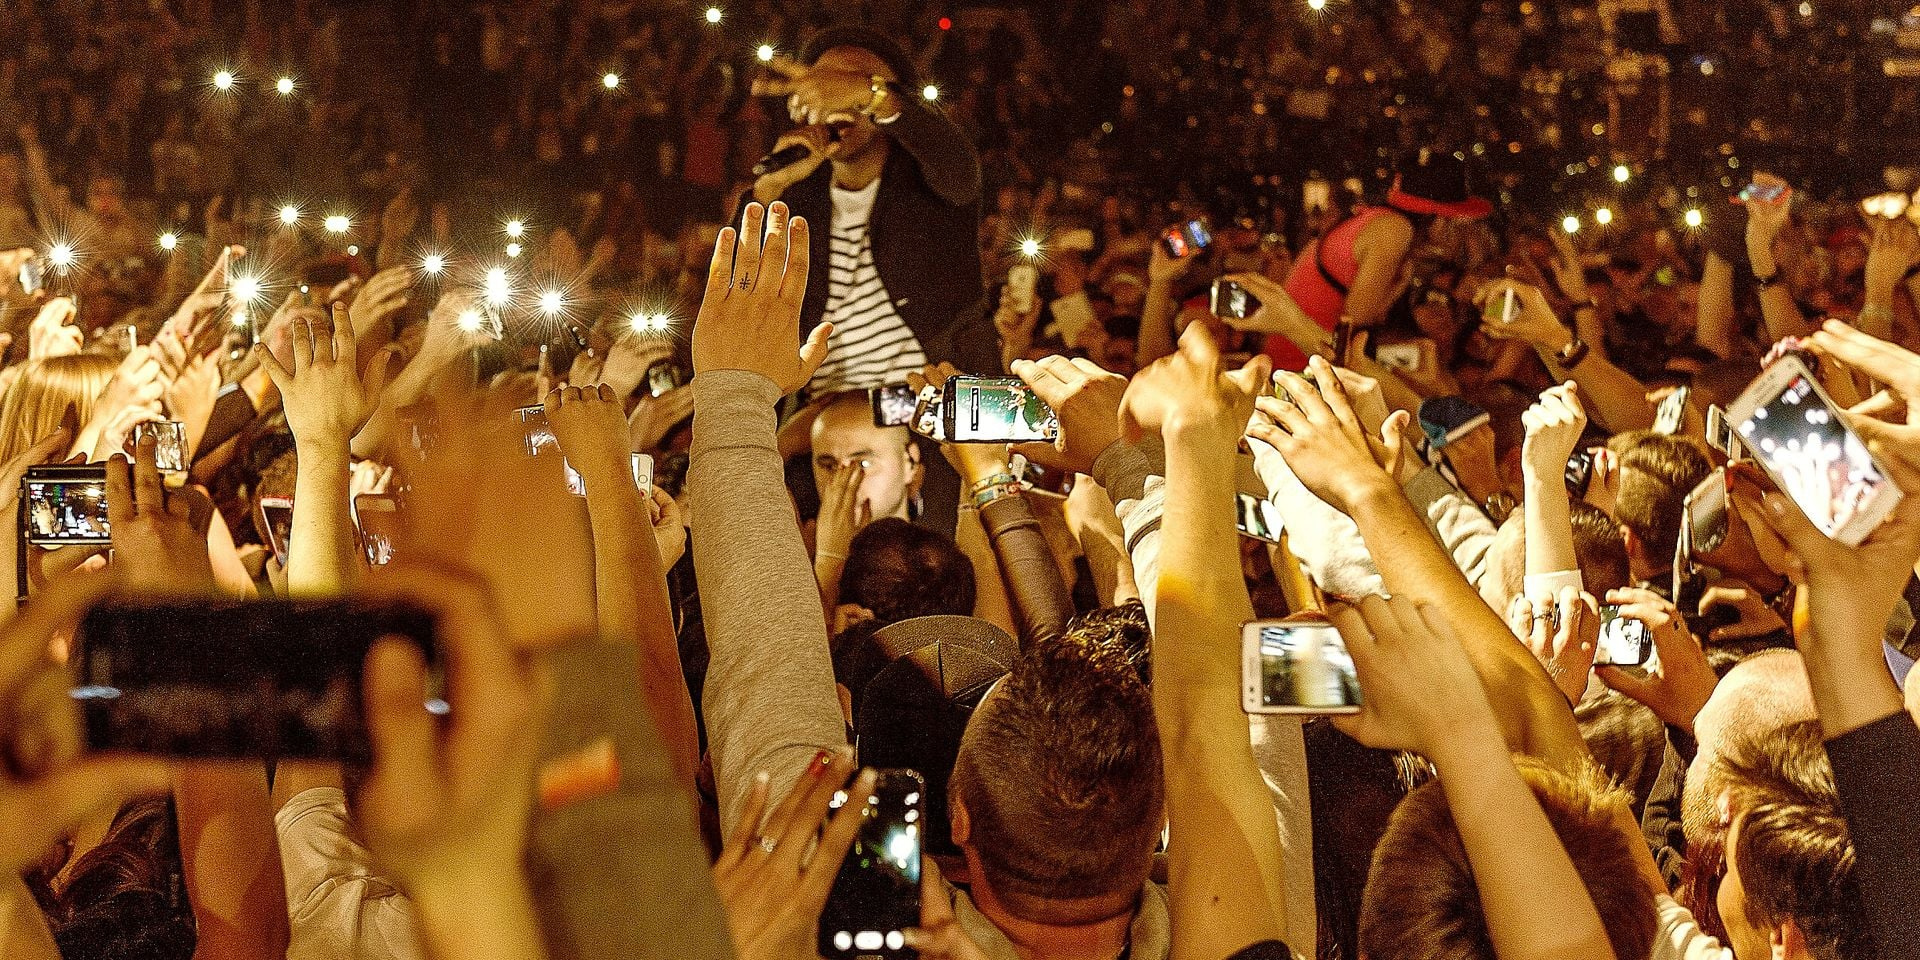 USING THE SMARTPHONE IN CONCERT